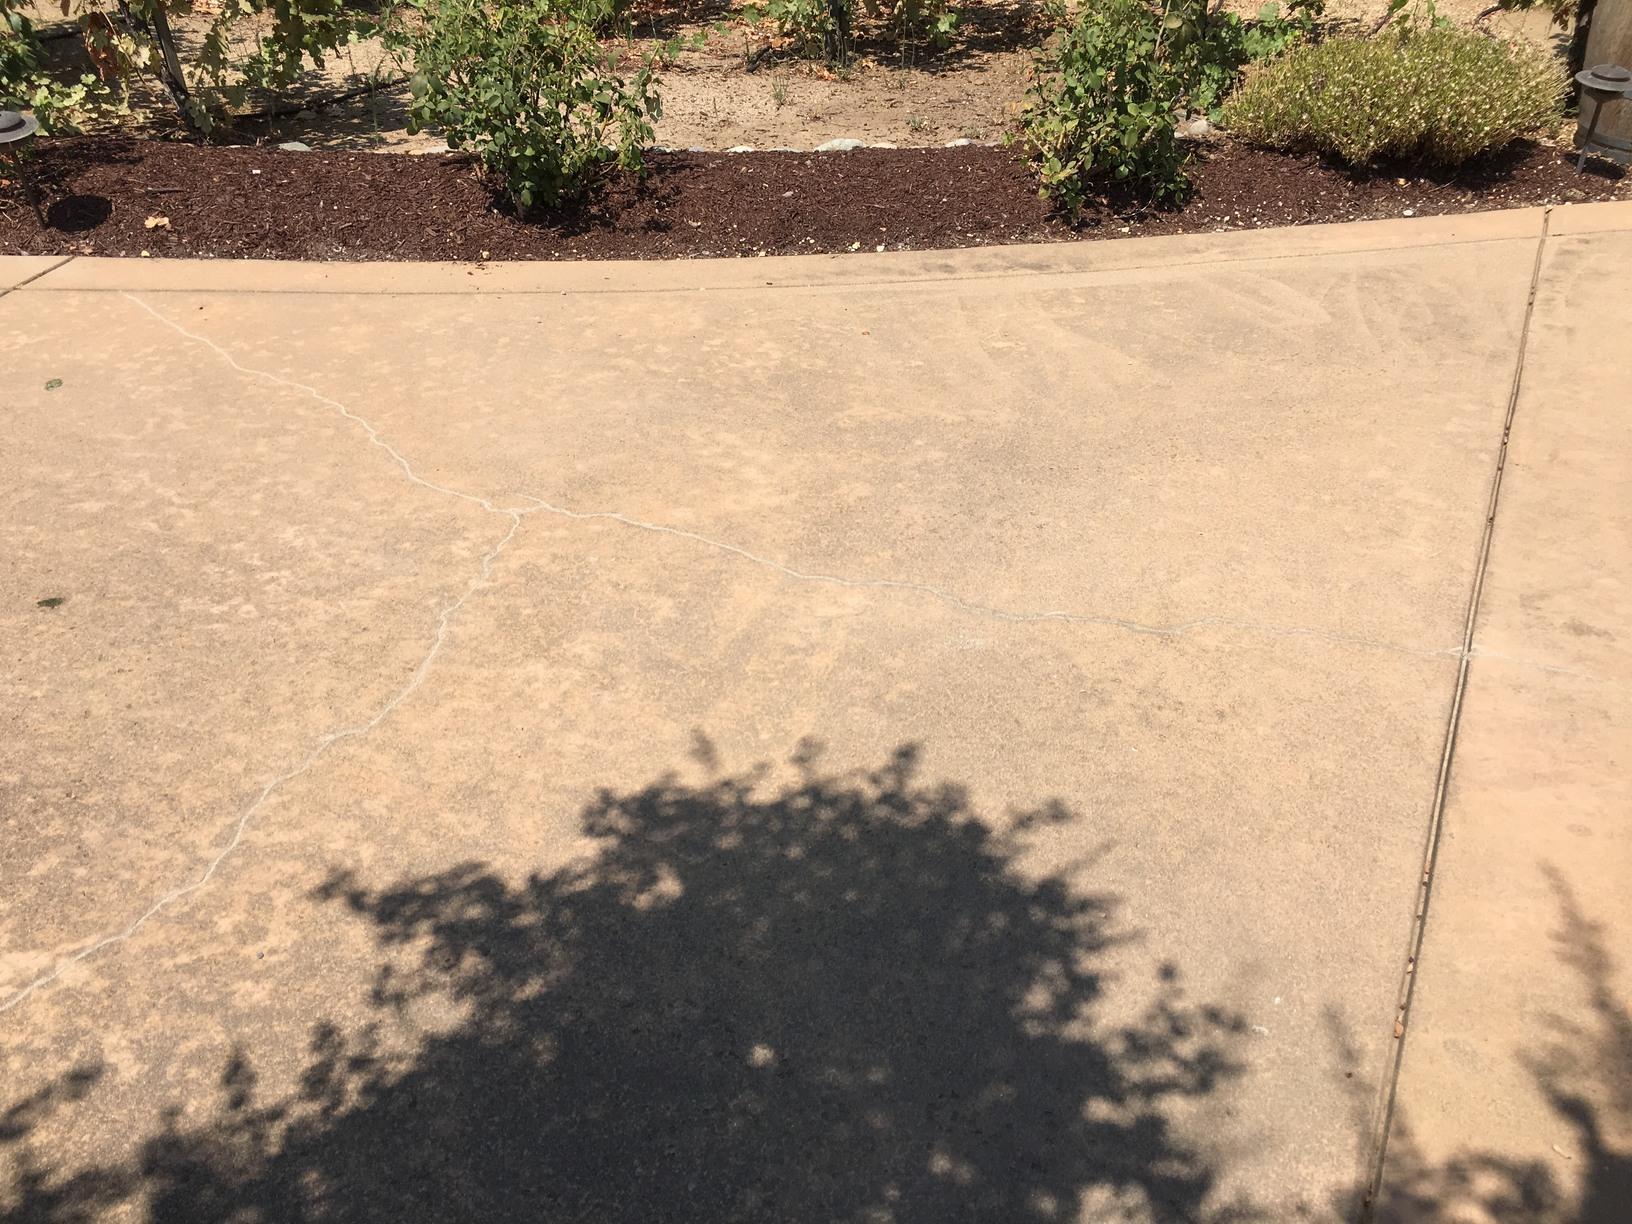 Nexus Pro Joint Sealant installment in Loomis, CA - After Photo